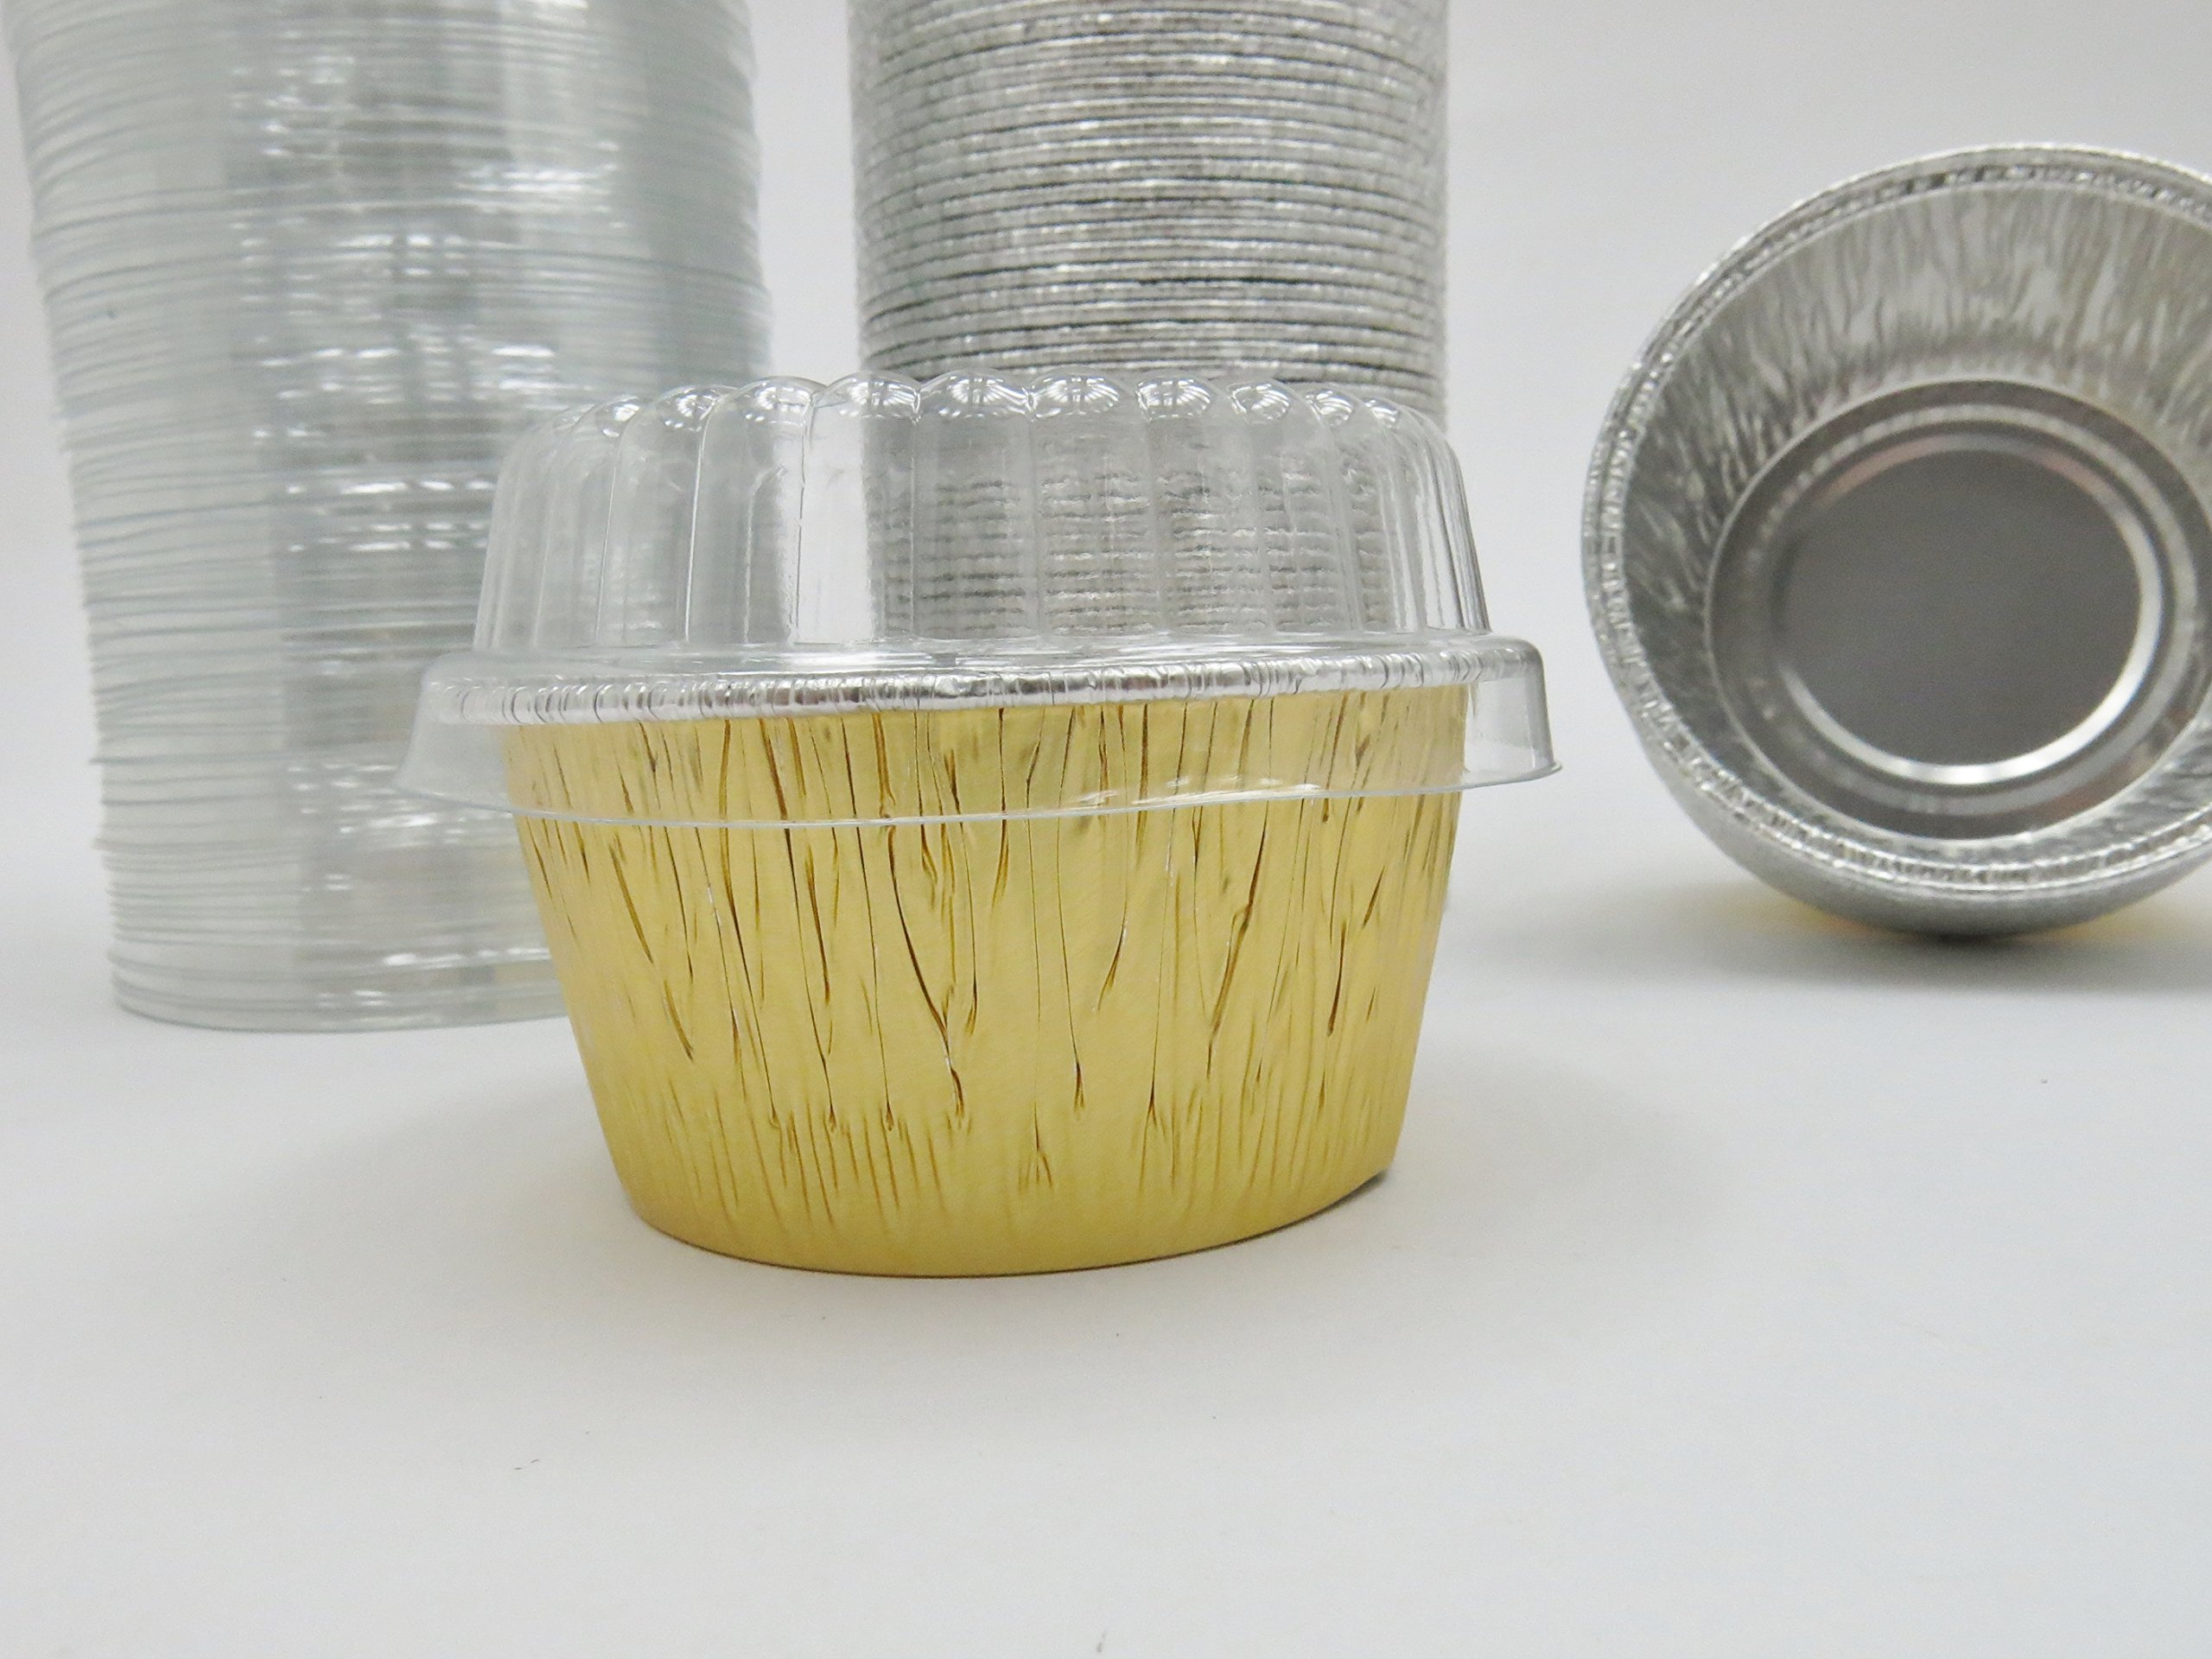 Disposable Aluminum Gold 4 oz. Baking Cups/ramekins with Clear Plastic Lids #1110P (1,000)